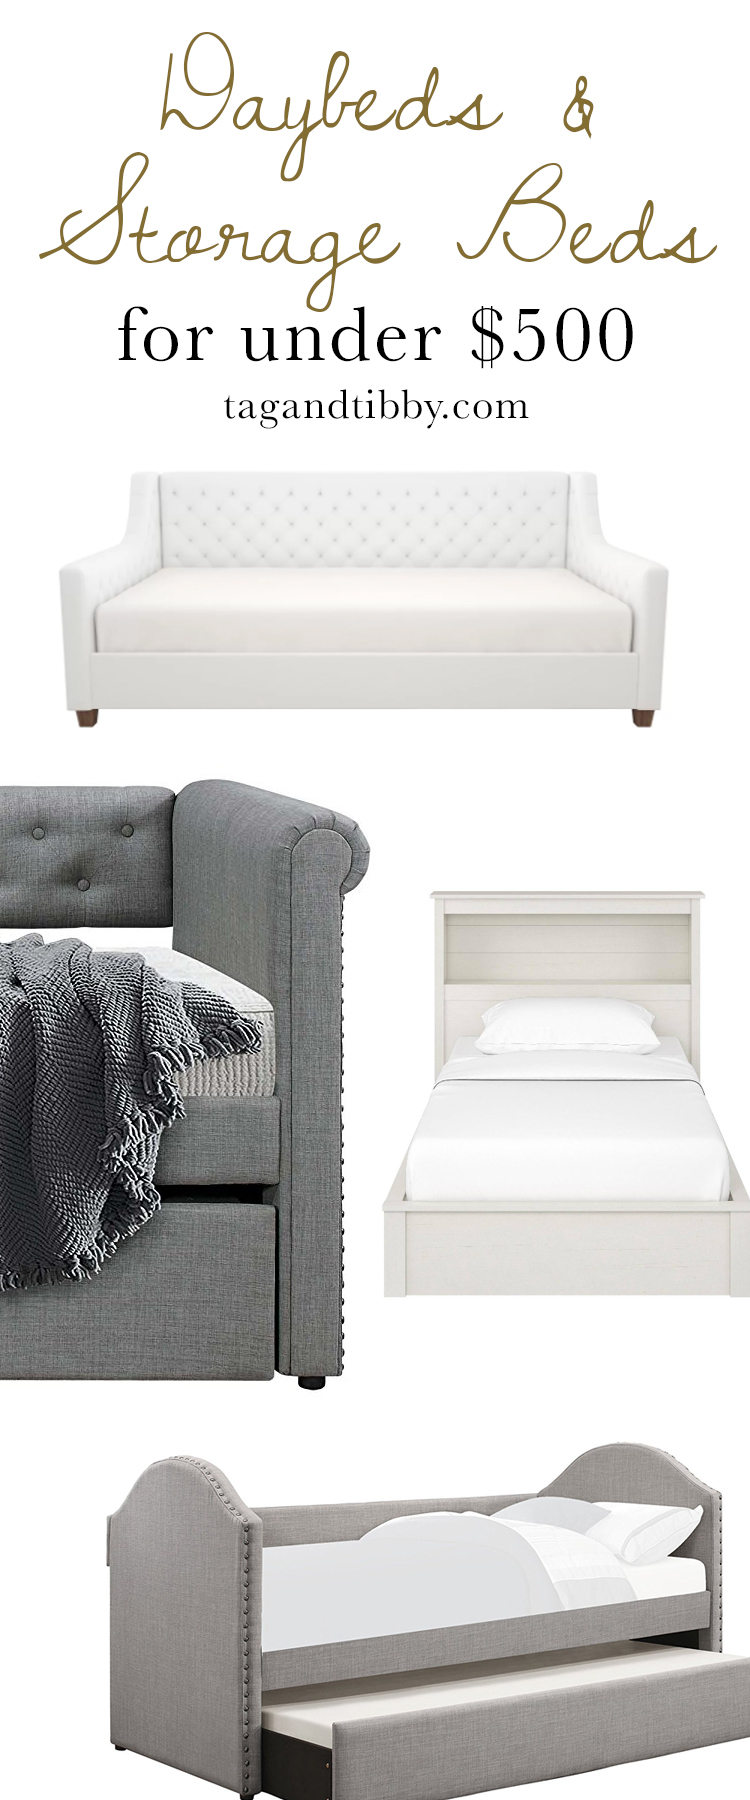 Daybeds & Storage Beds for Tweens priced under $500